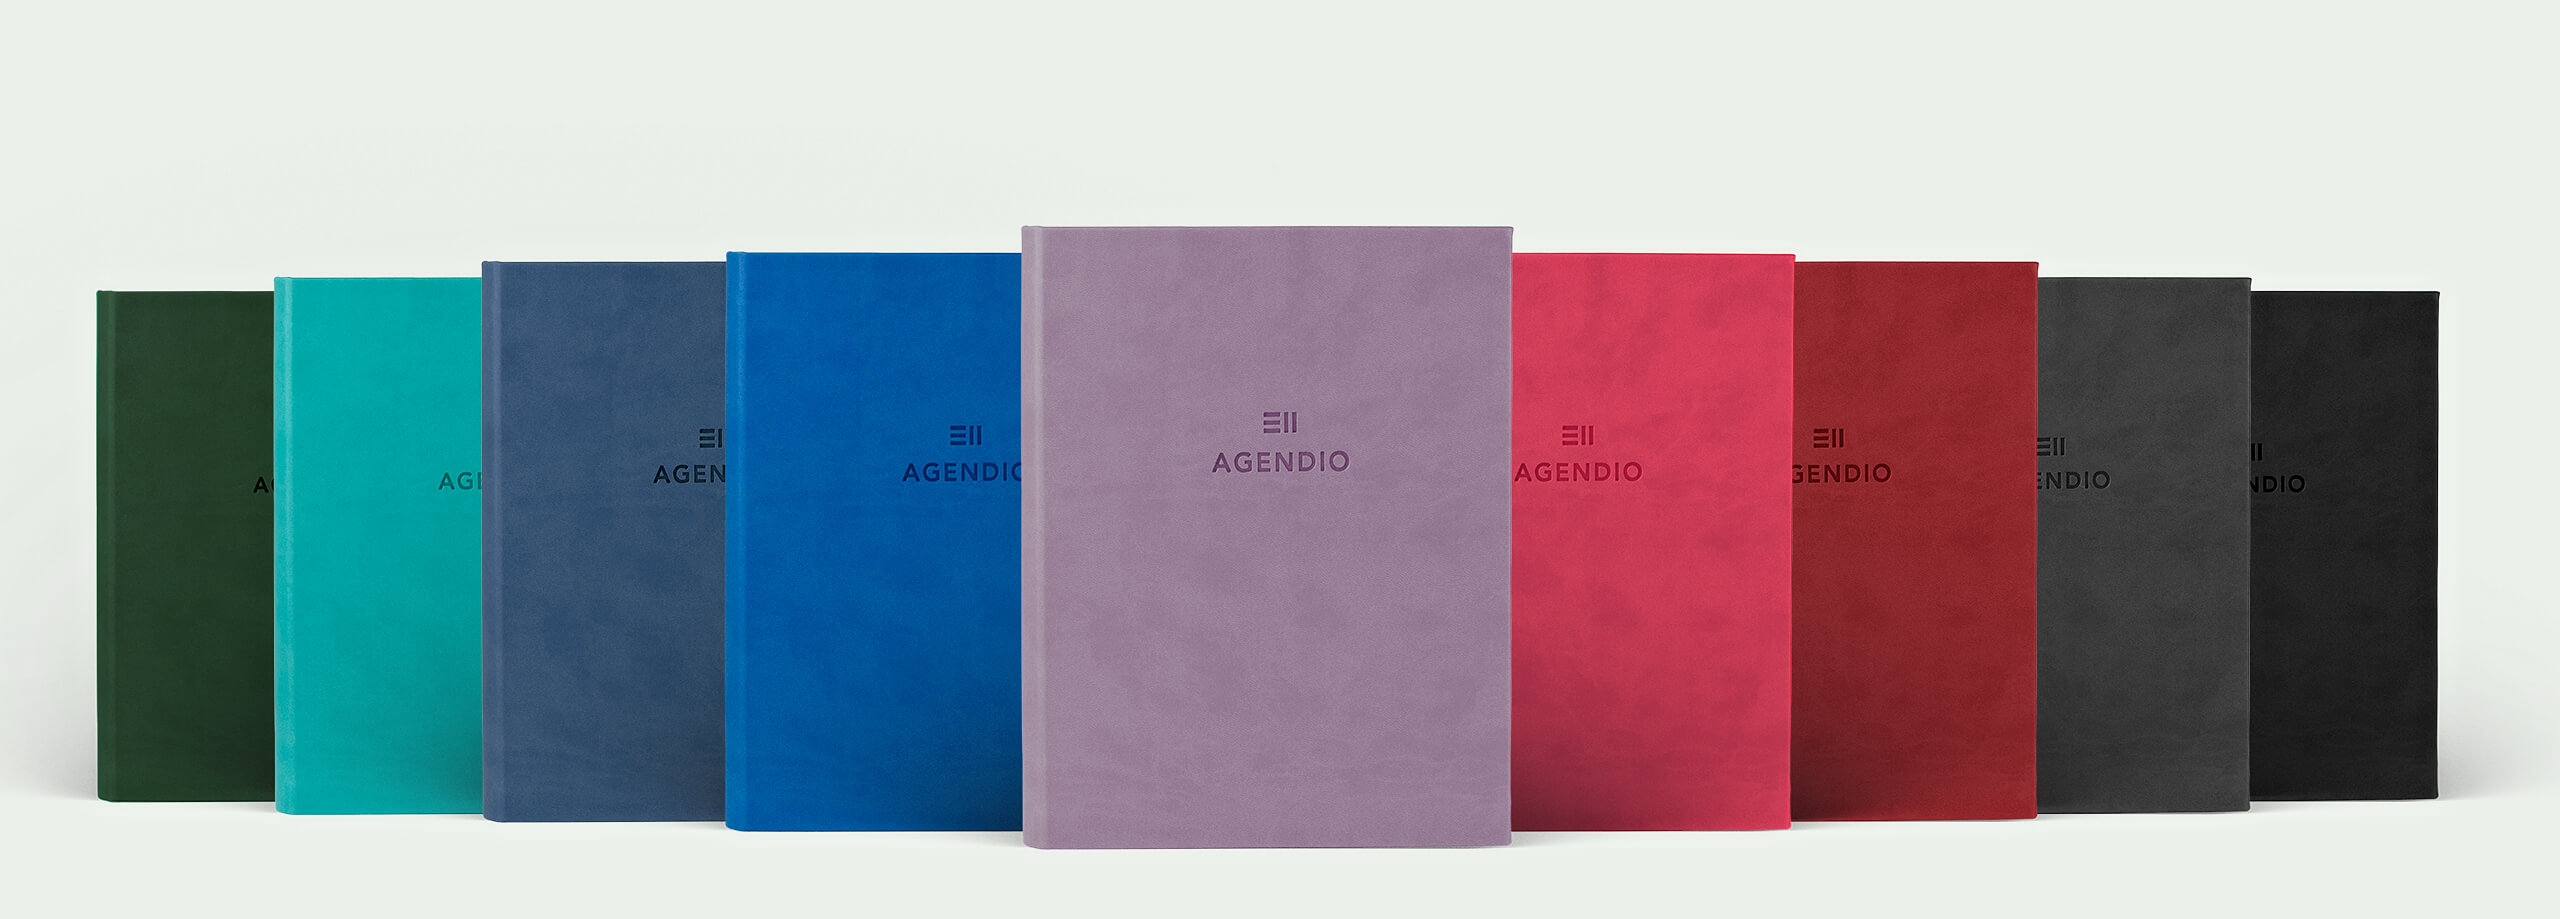 Agendio customizable planners available in 9 gorgeous color wrap covers.